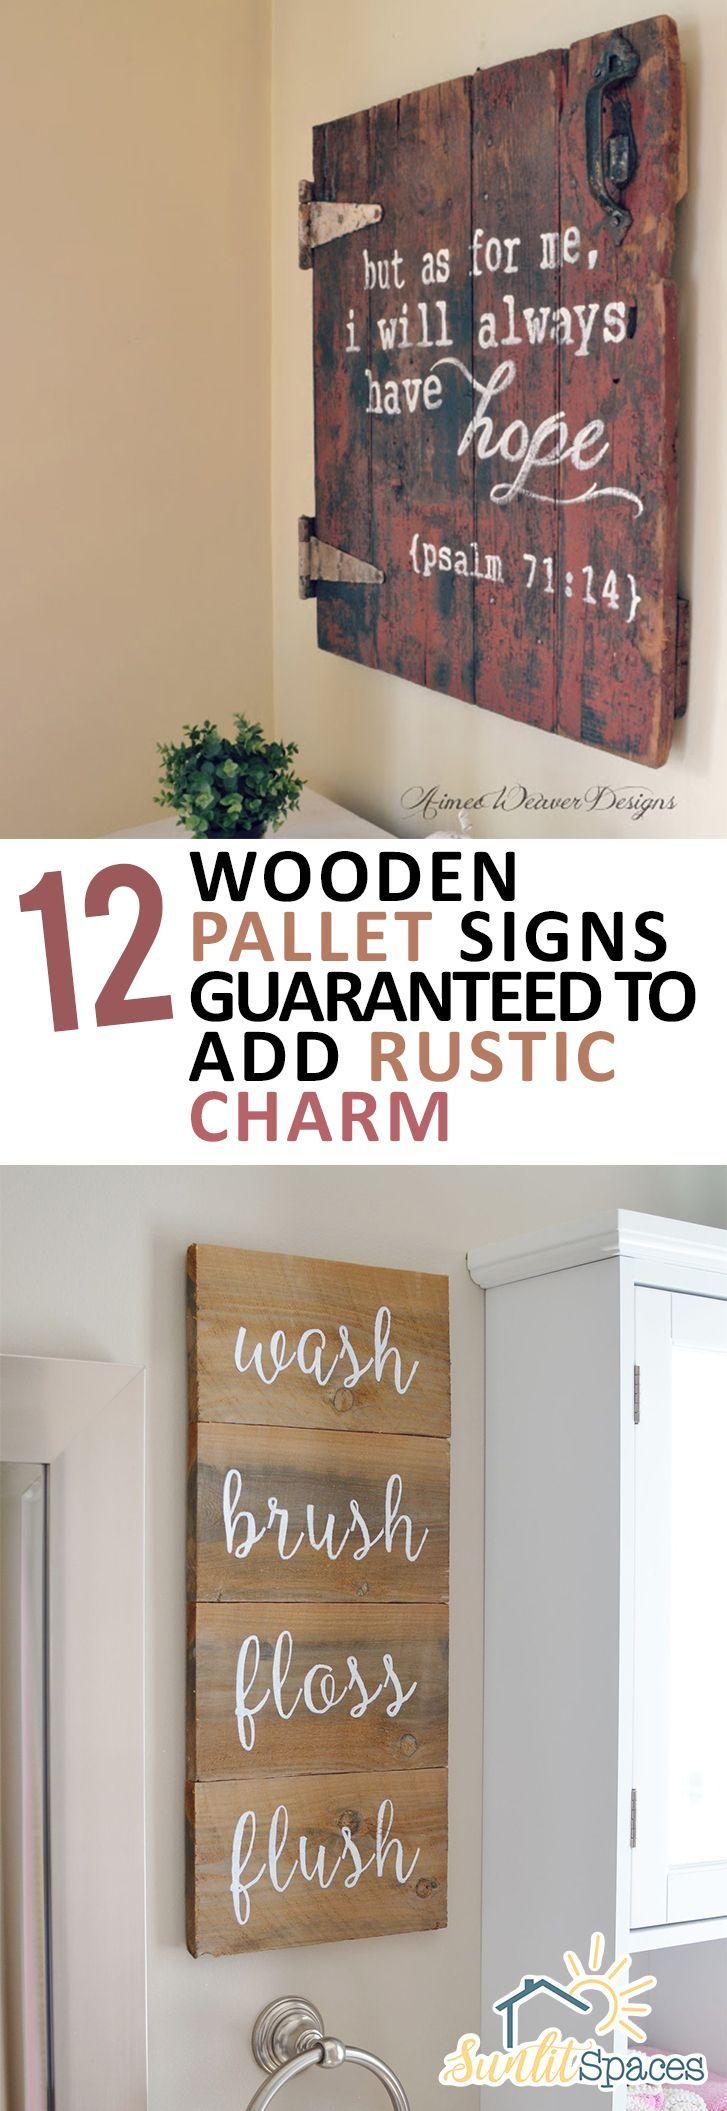 Photo of 12 Wooden Pallet Signs Guaranteed to Add Rustic Charm – Sunlit Spaces | DIY Home Decor, Holiday, and More